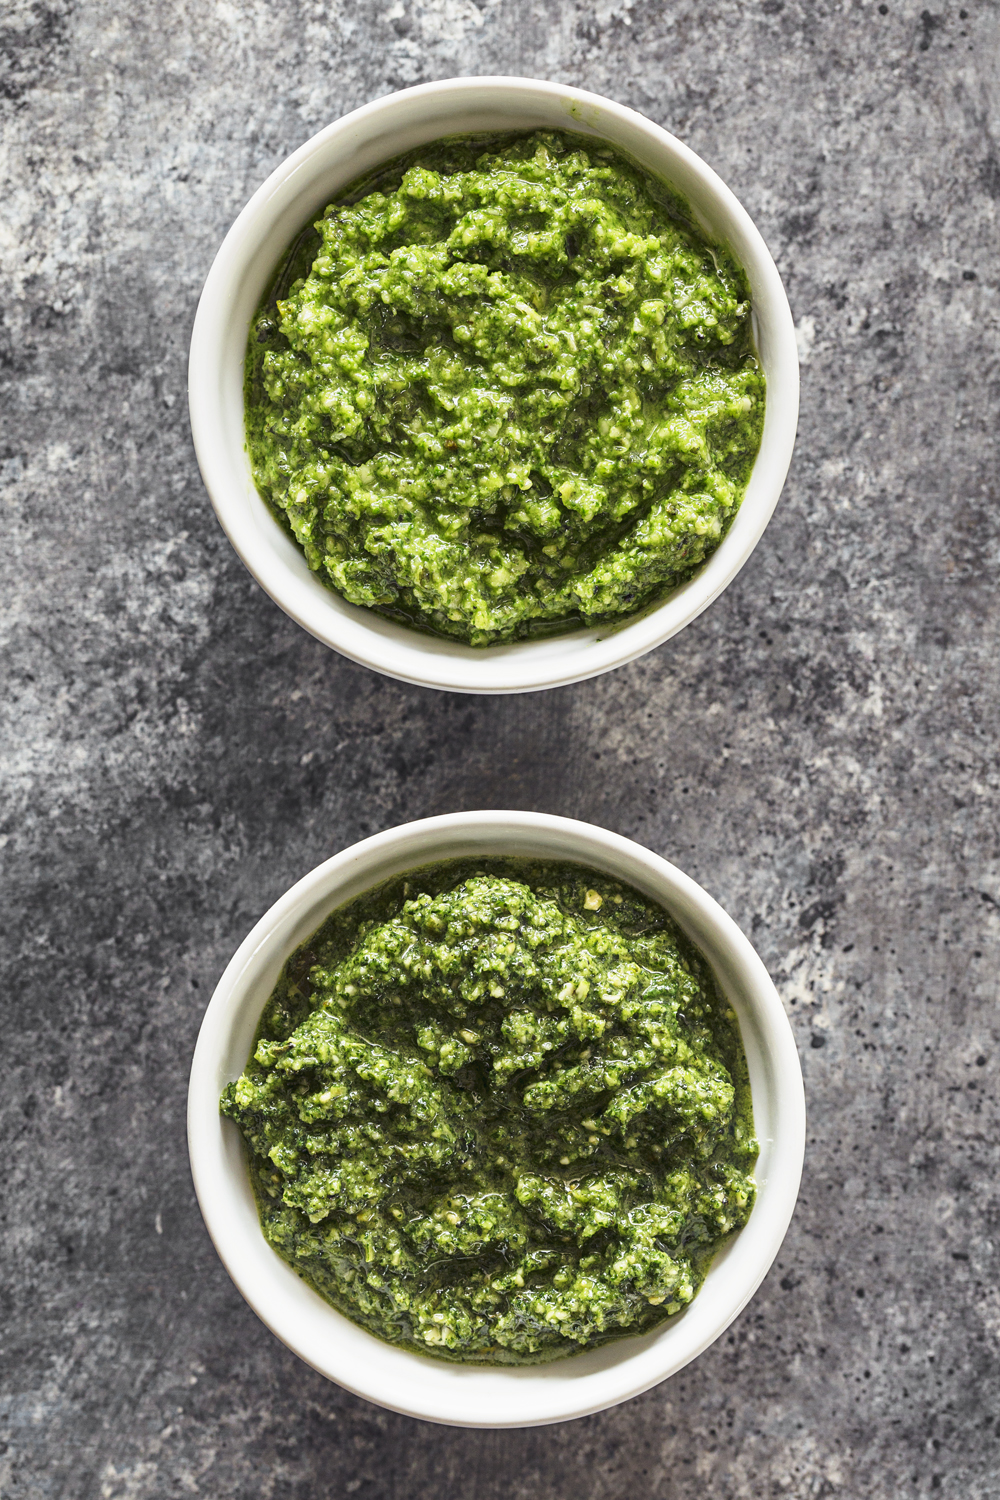 Easy, simple recipe for a Vegan Pumpkin Seed Pesto. Works with any fresh aromatic herb or leafy green and is ready in under 5 minutes!